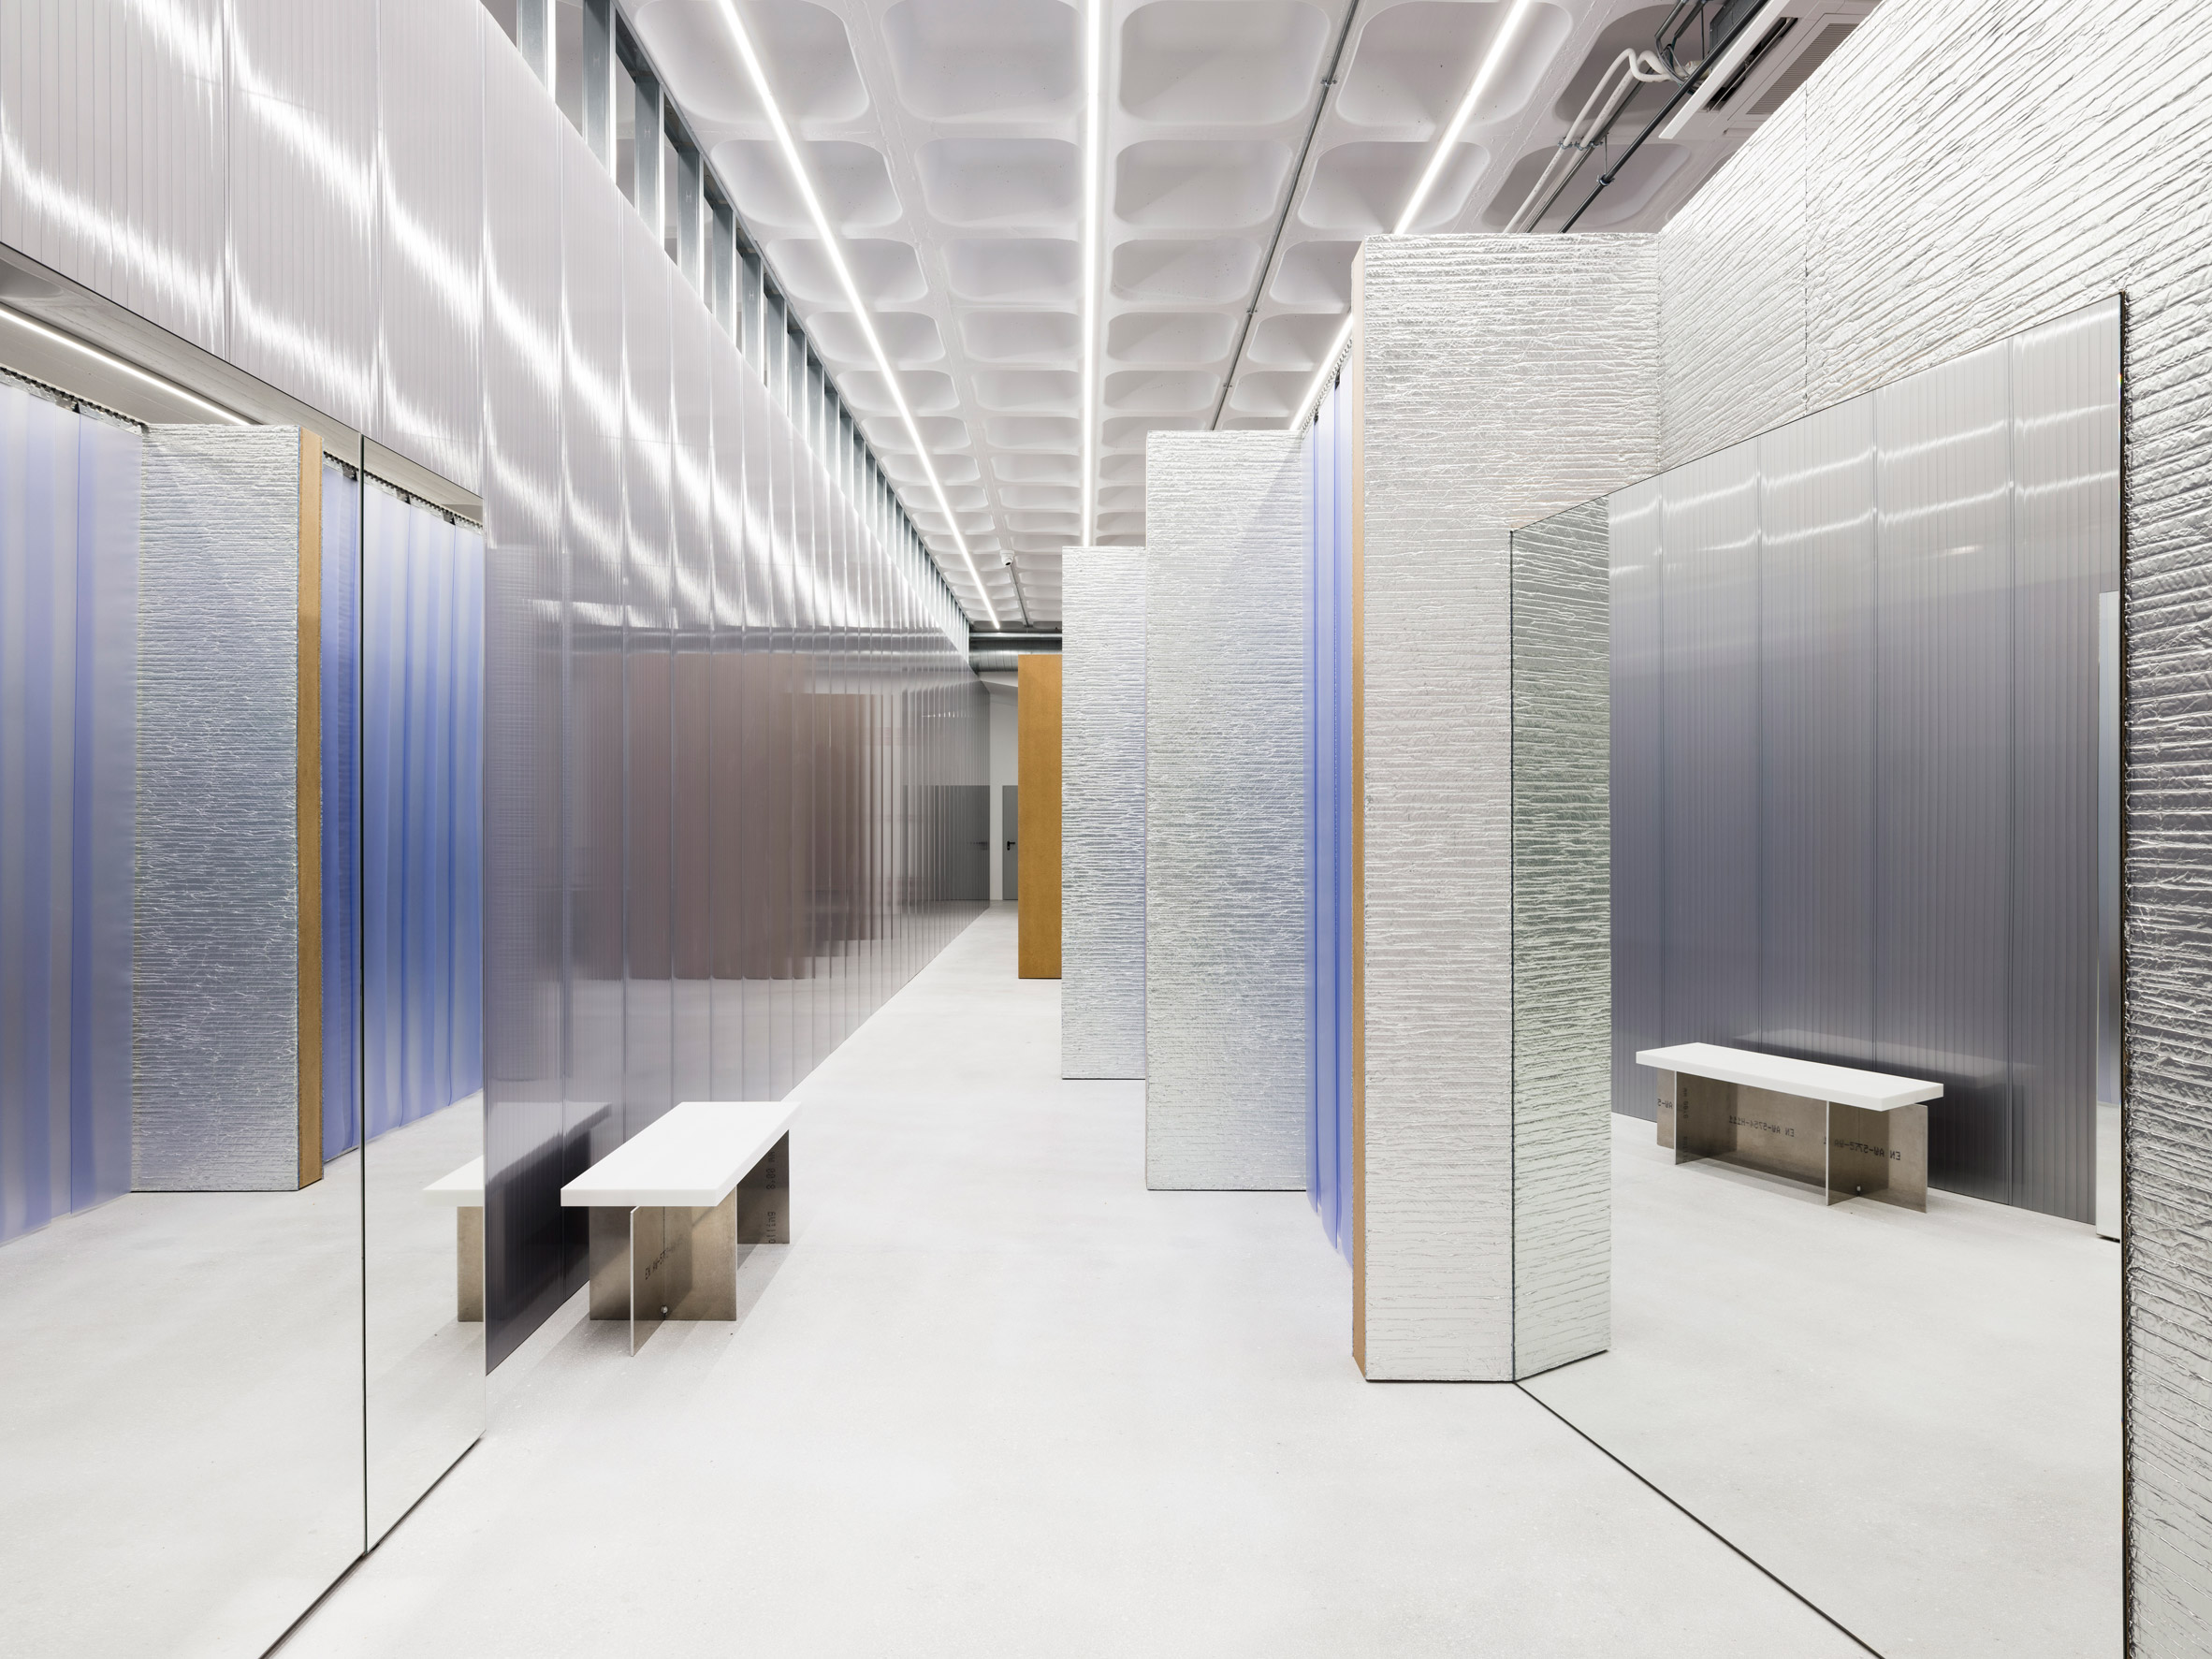 Tem-plate store by Gonzalez Haase AAS